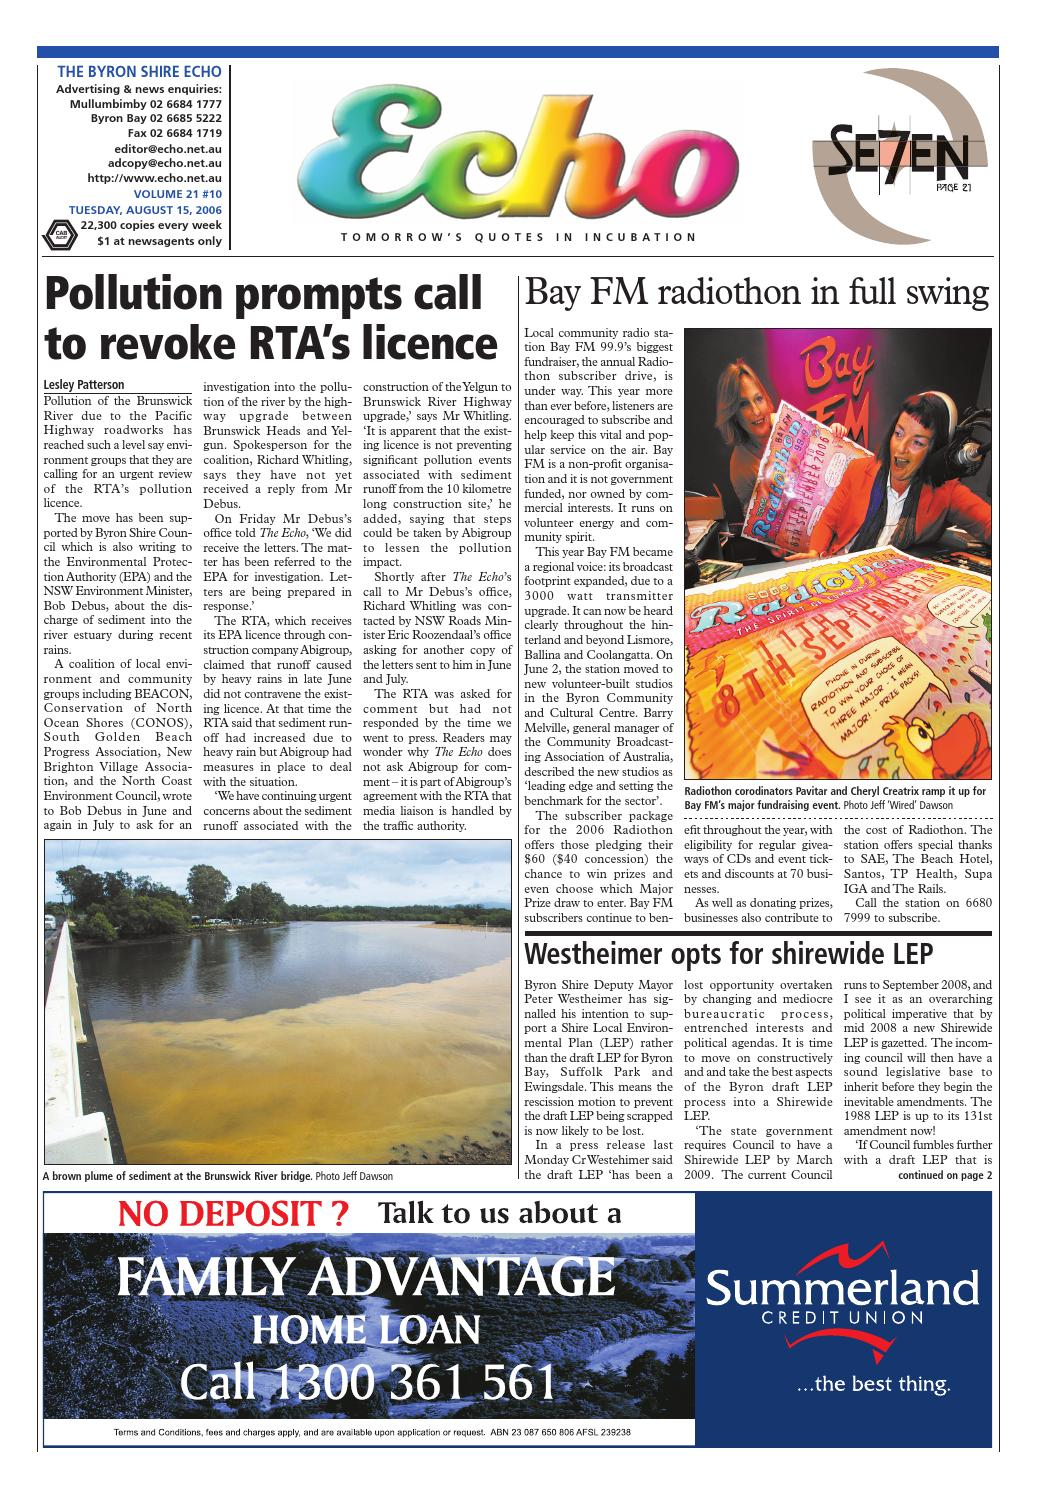 Byron Shire Echo – Issue 21 10 – 15/10/2006 by Echo Publications - issuu